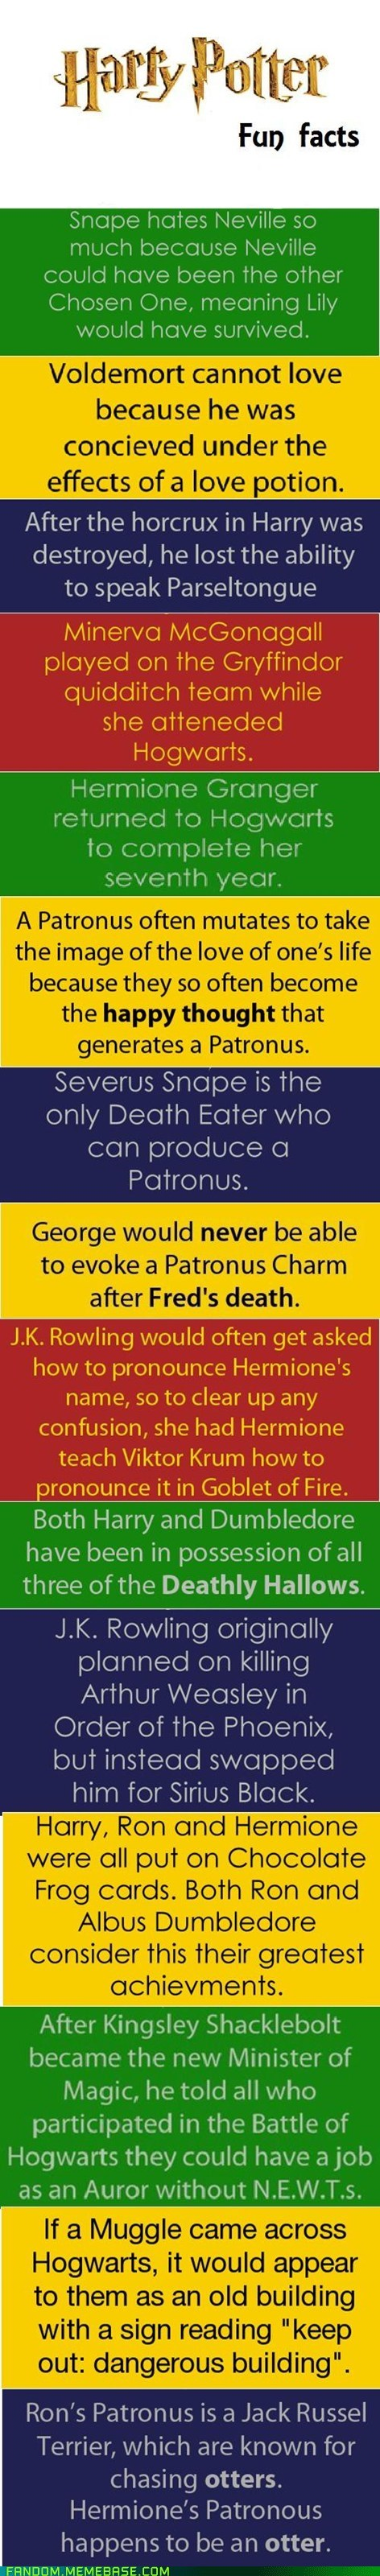 Harry Potter movies books fun facts - 6909845504